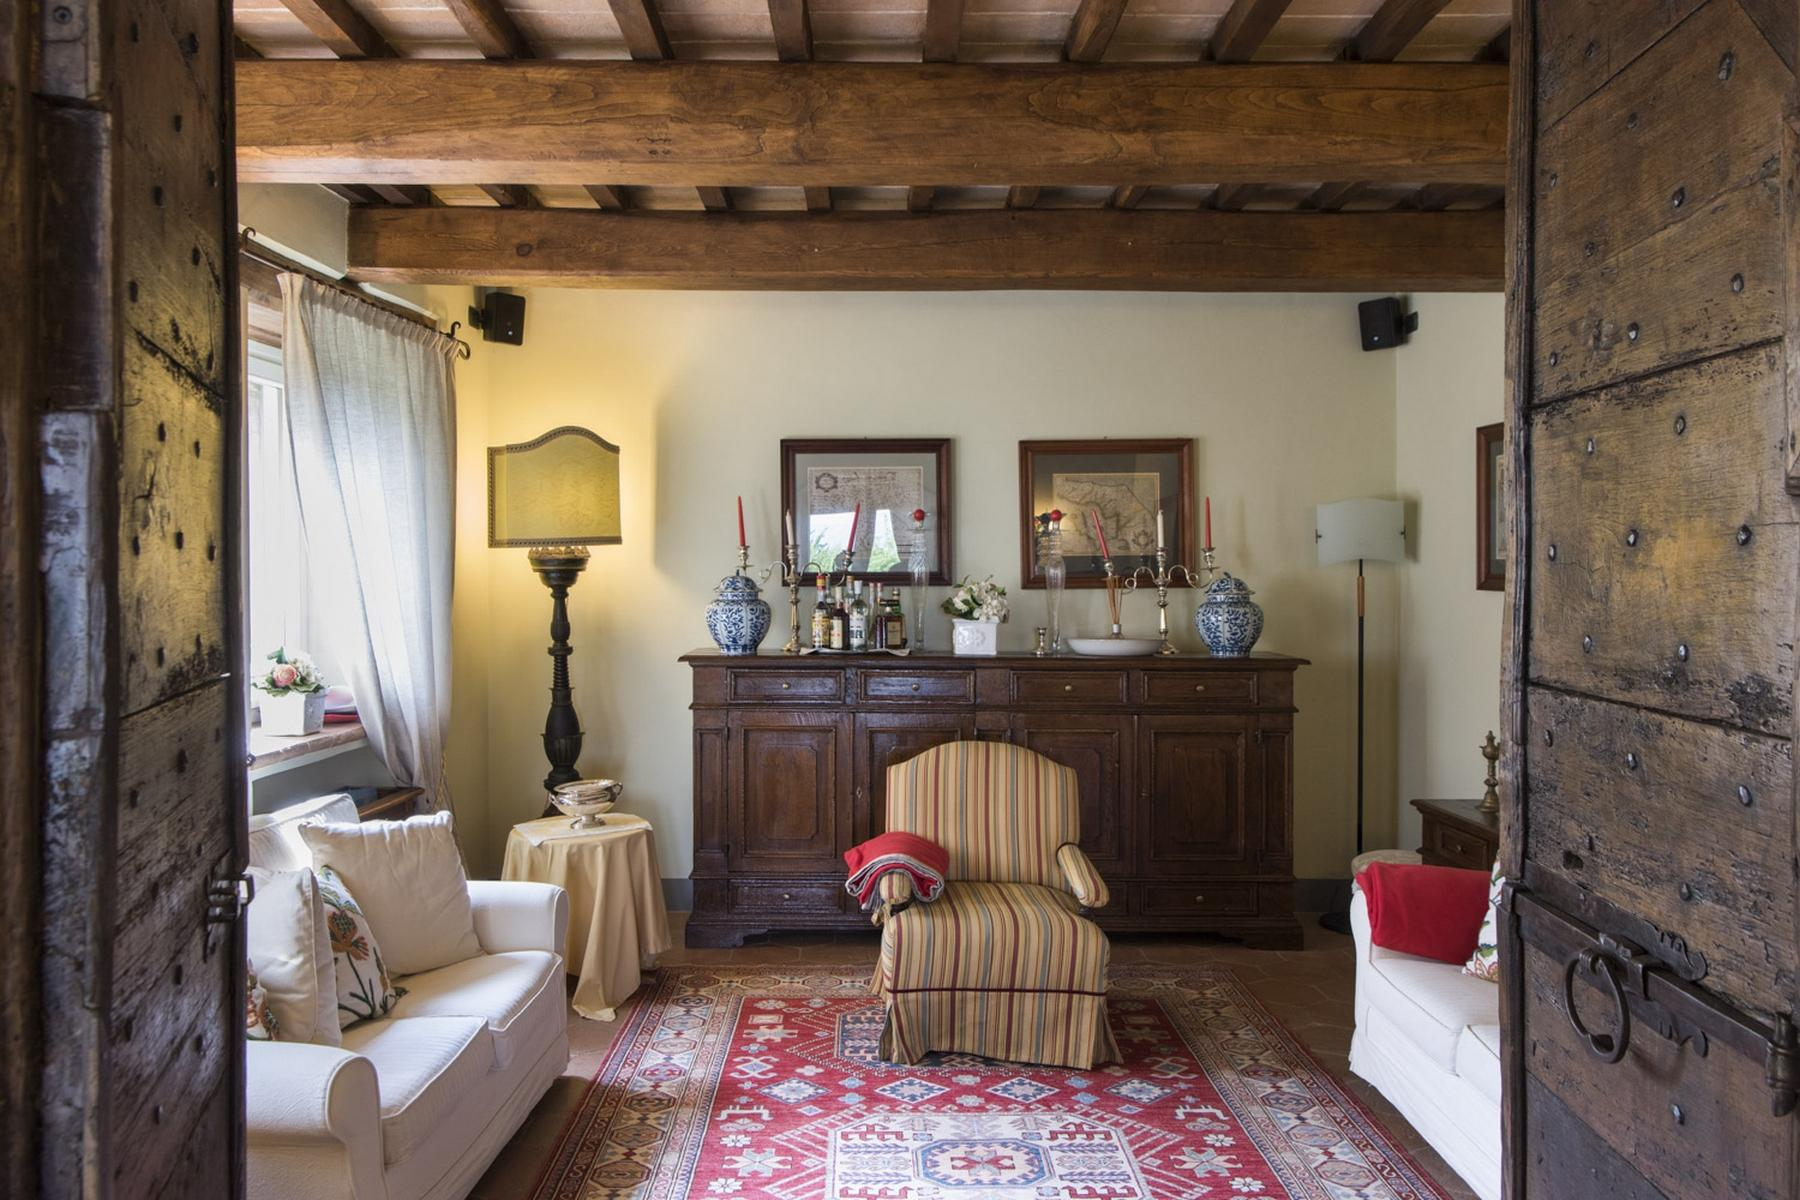 Marvellous property in the heart of Umbria Region - 3